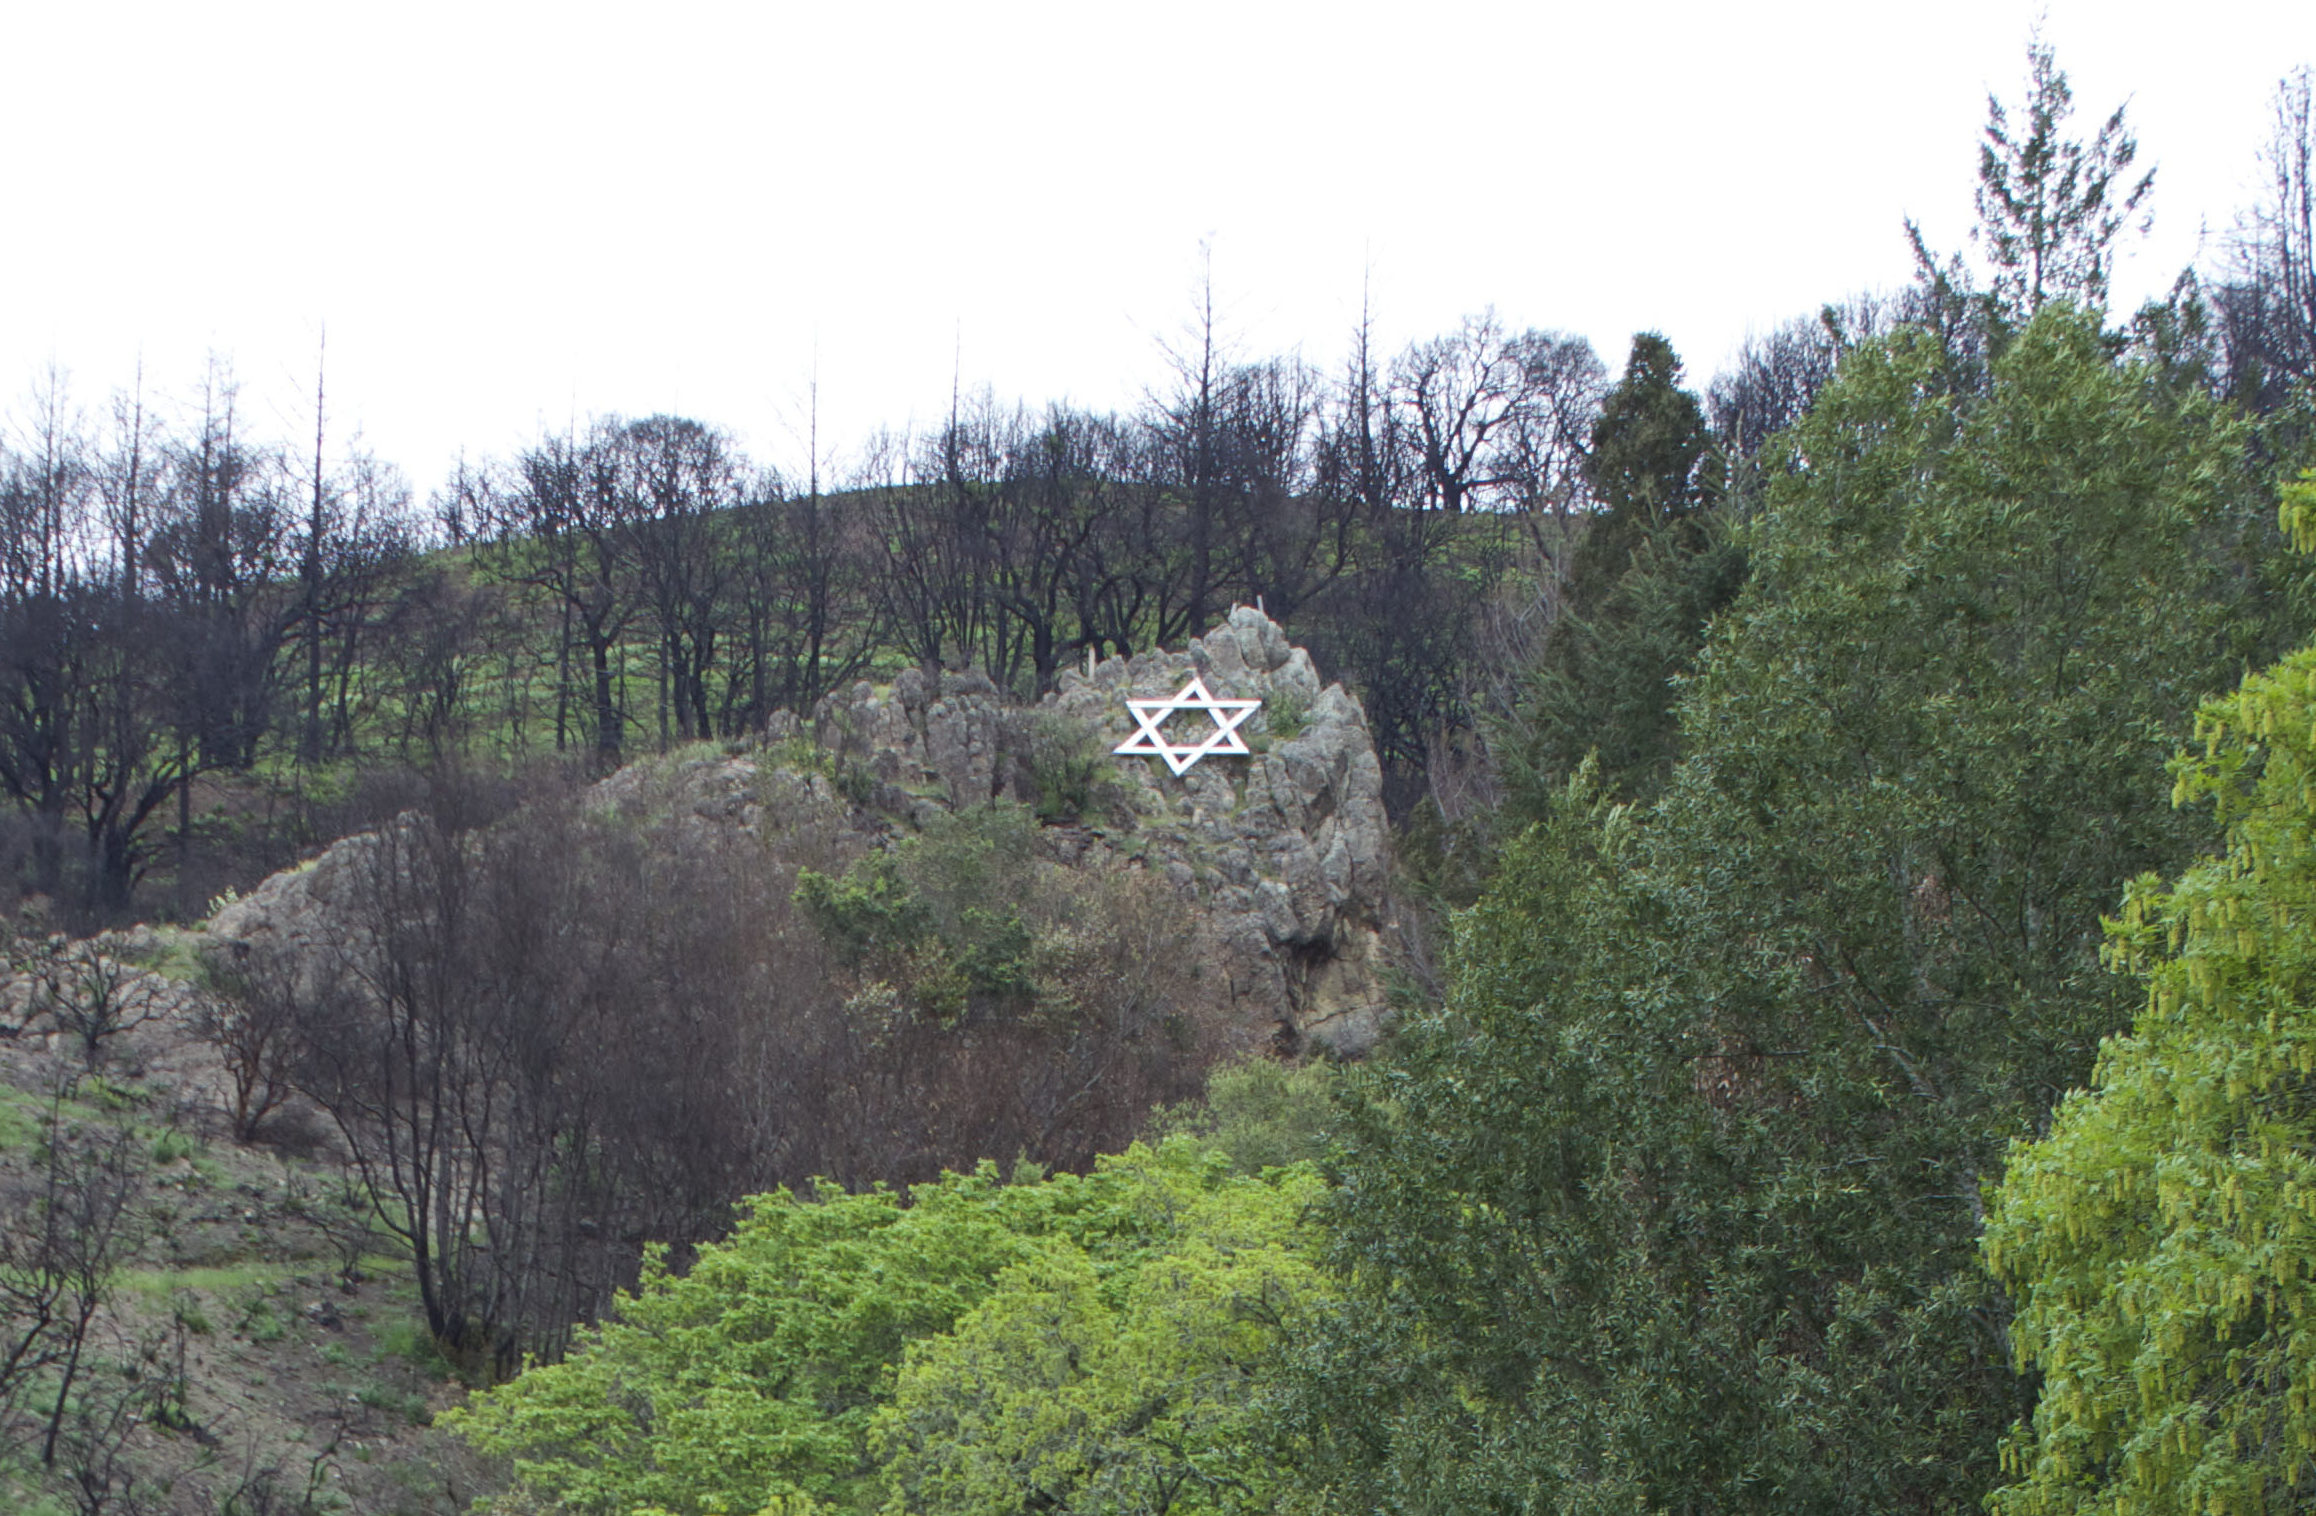 The iconic Star of David that sits on a hillside over Camp Newman was surrounded by blackened remains six months ago. But now: signs of life. (Photo/Rob Gloster)